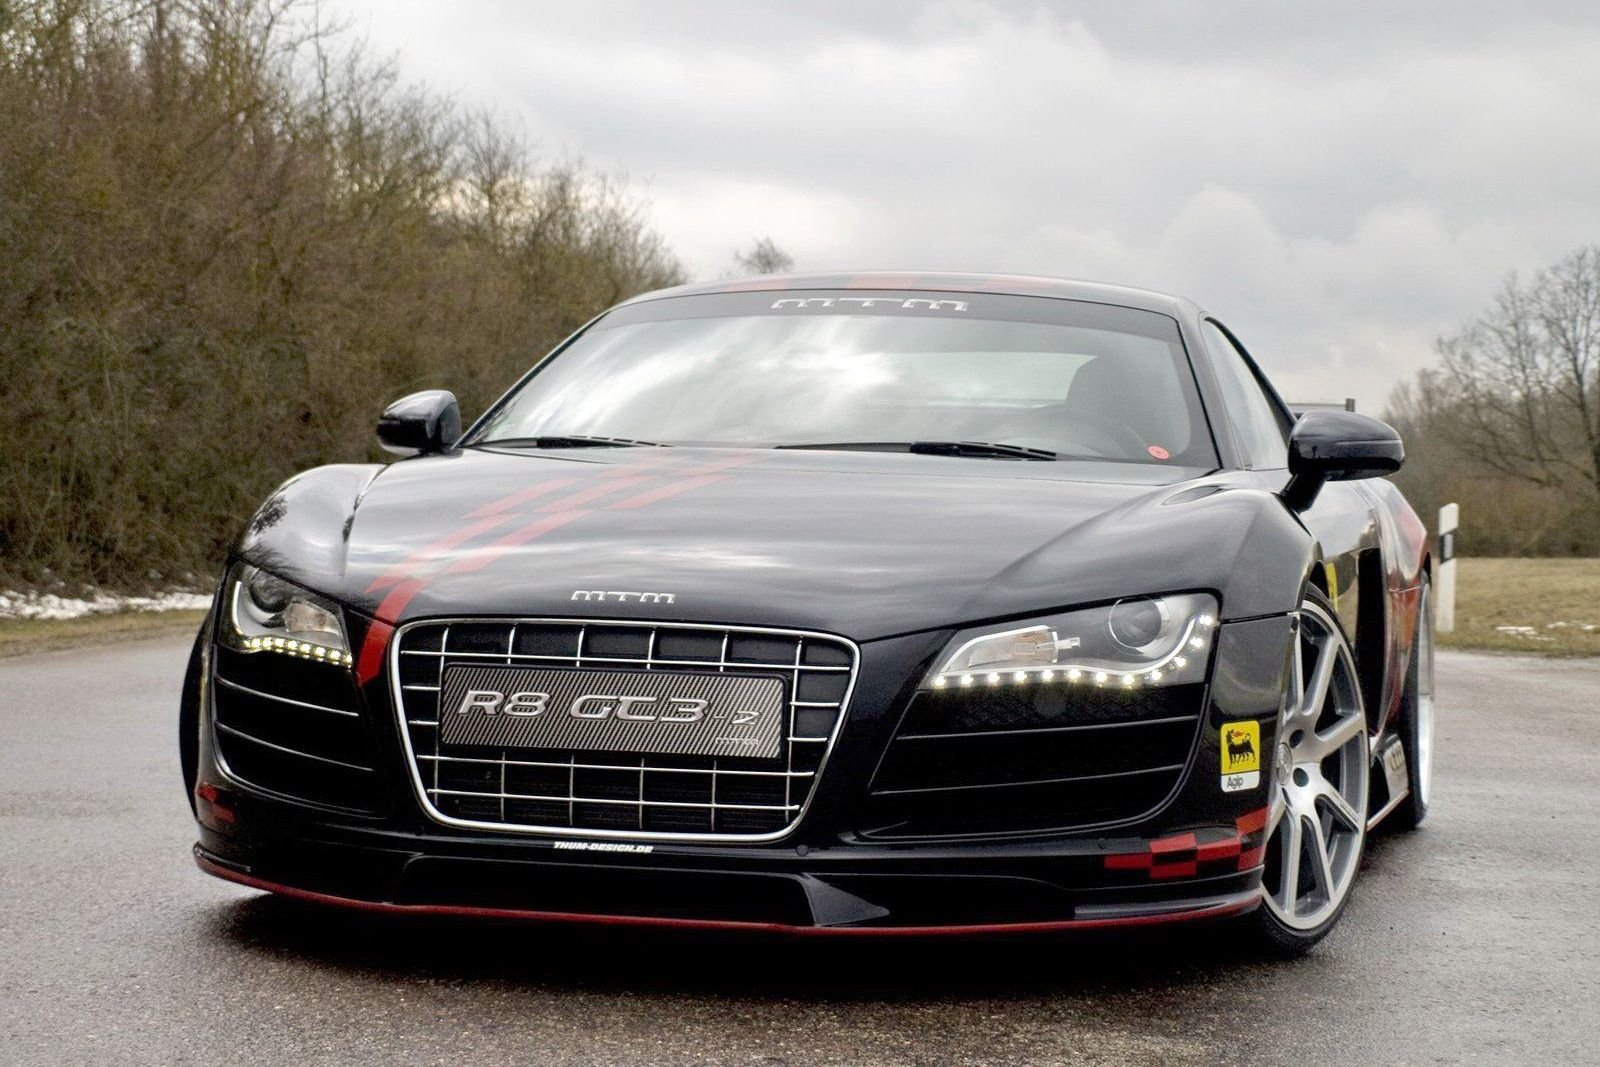 Latest Audi R8 Wallpapers And Backgrounds Car Editing Background Free Download